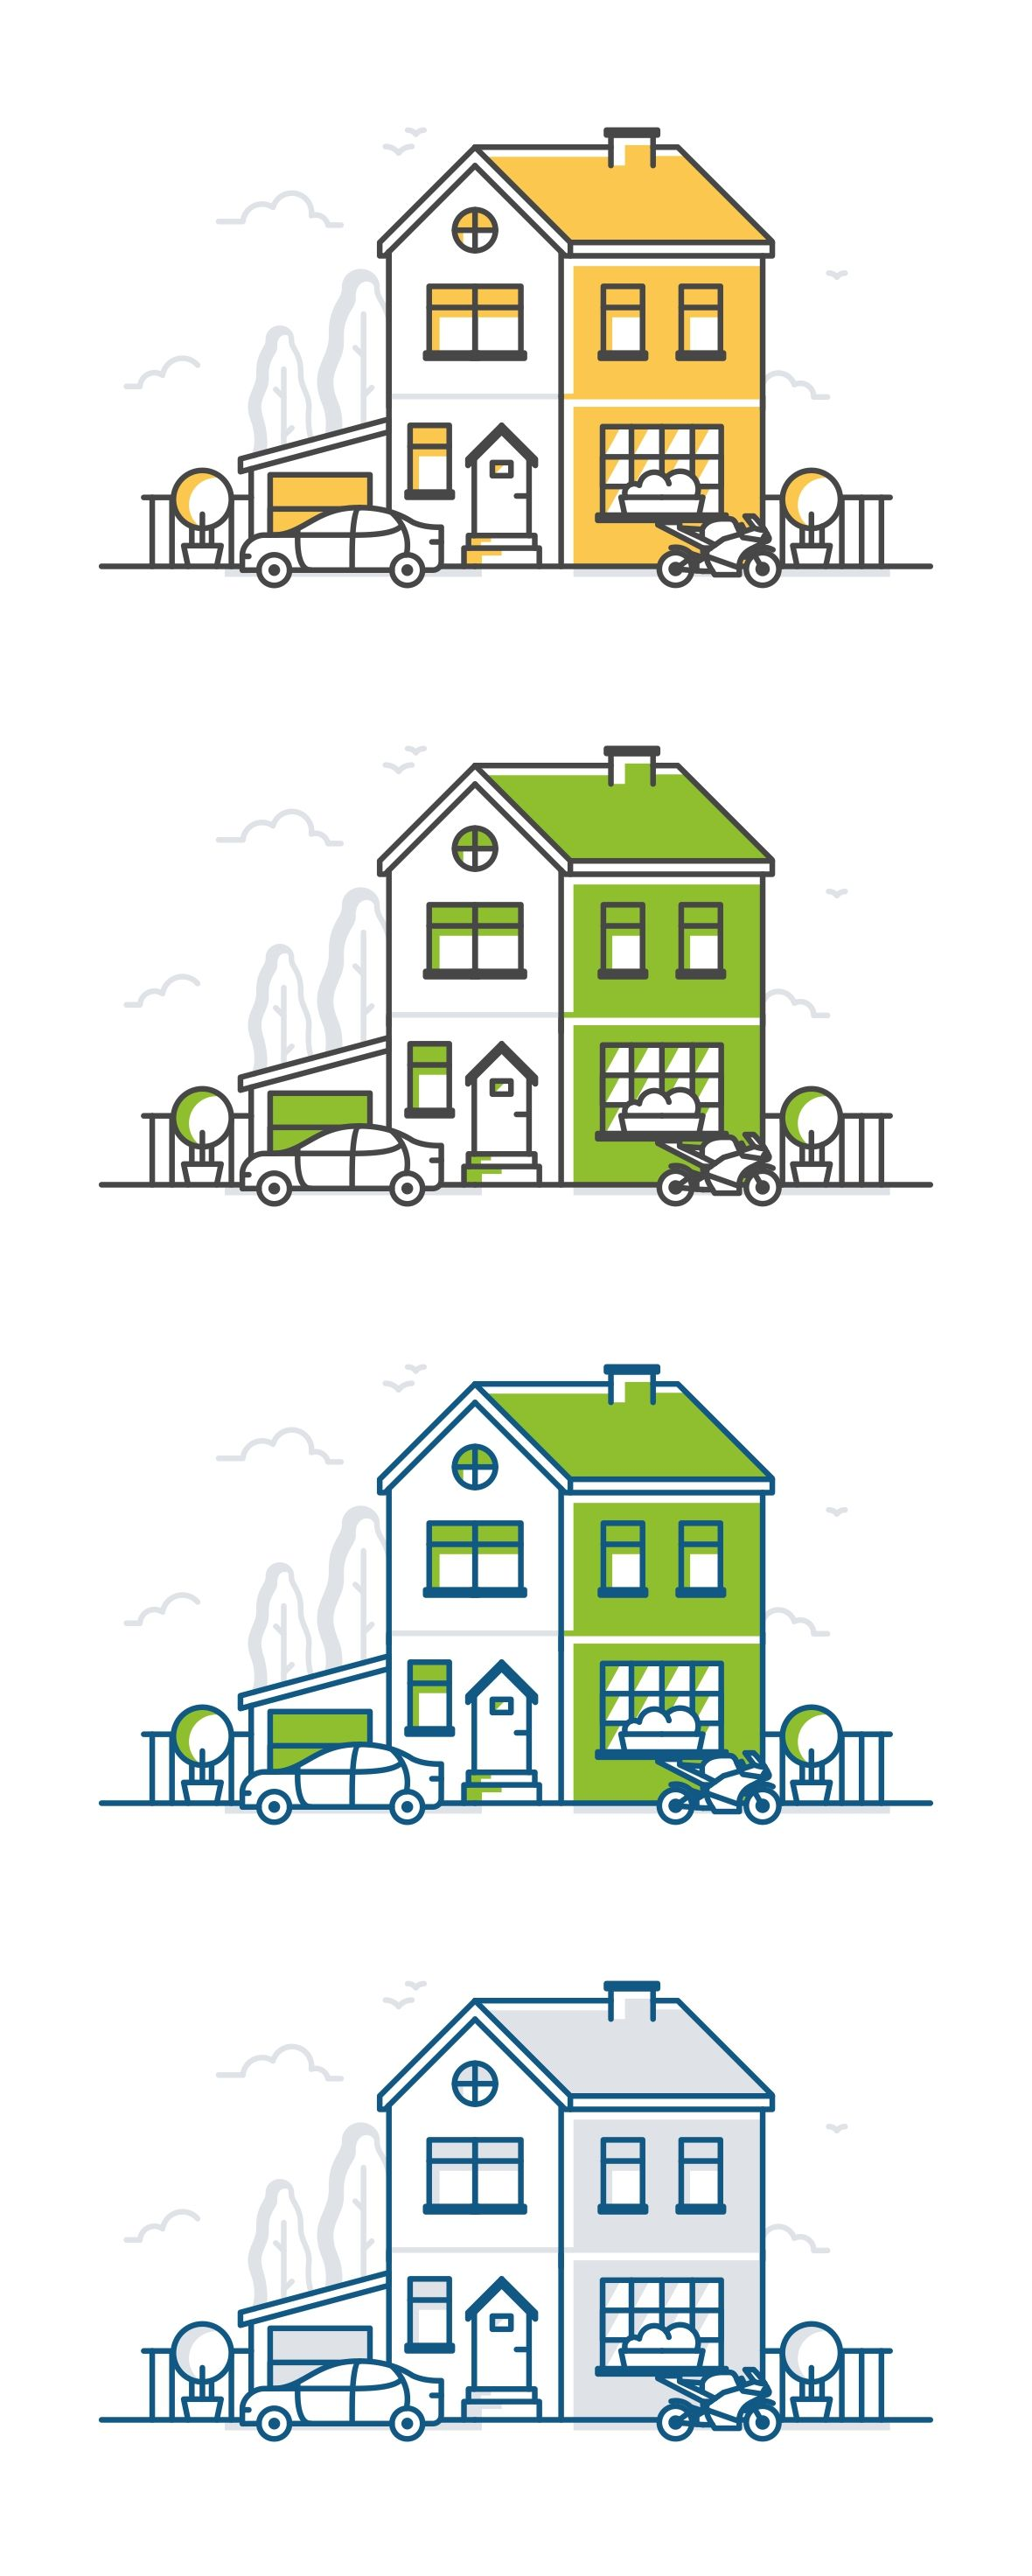 Residential Big House Add 画像あり 間取り イラスト